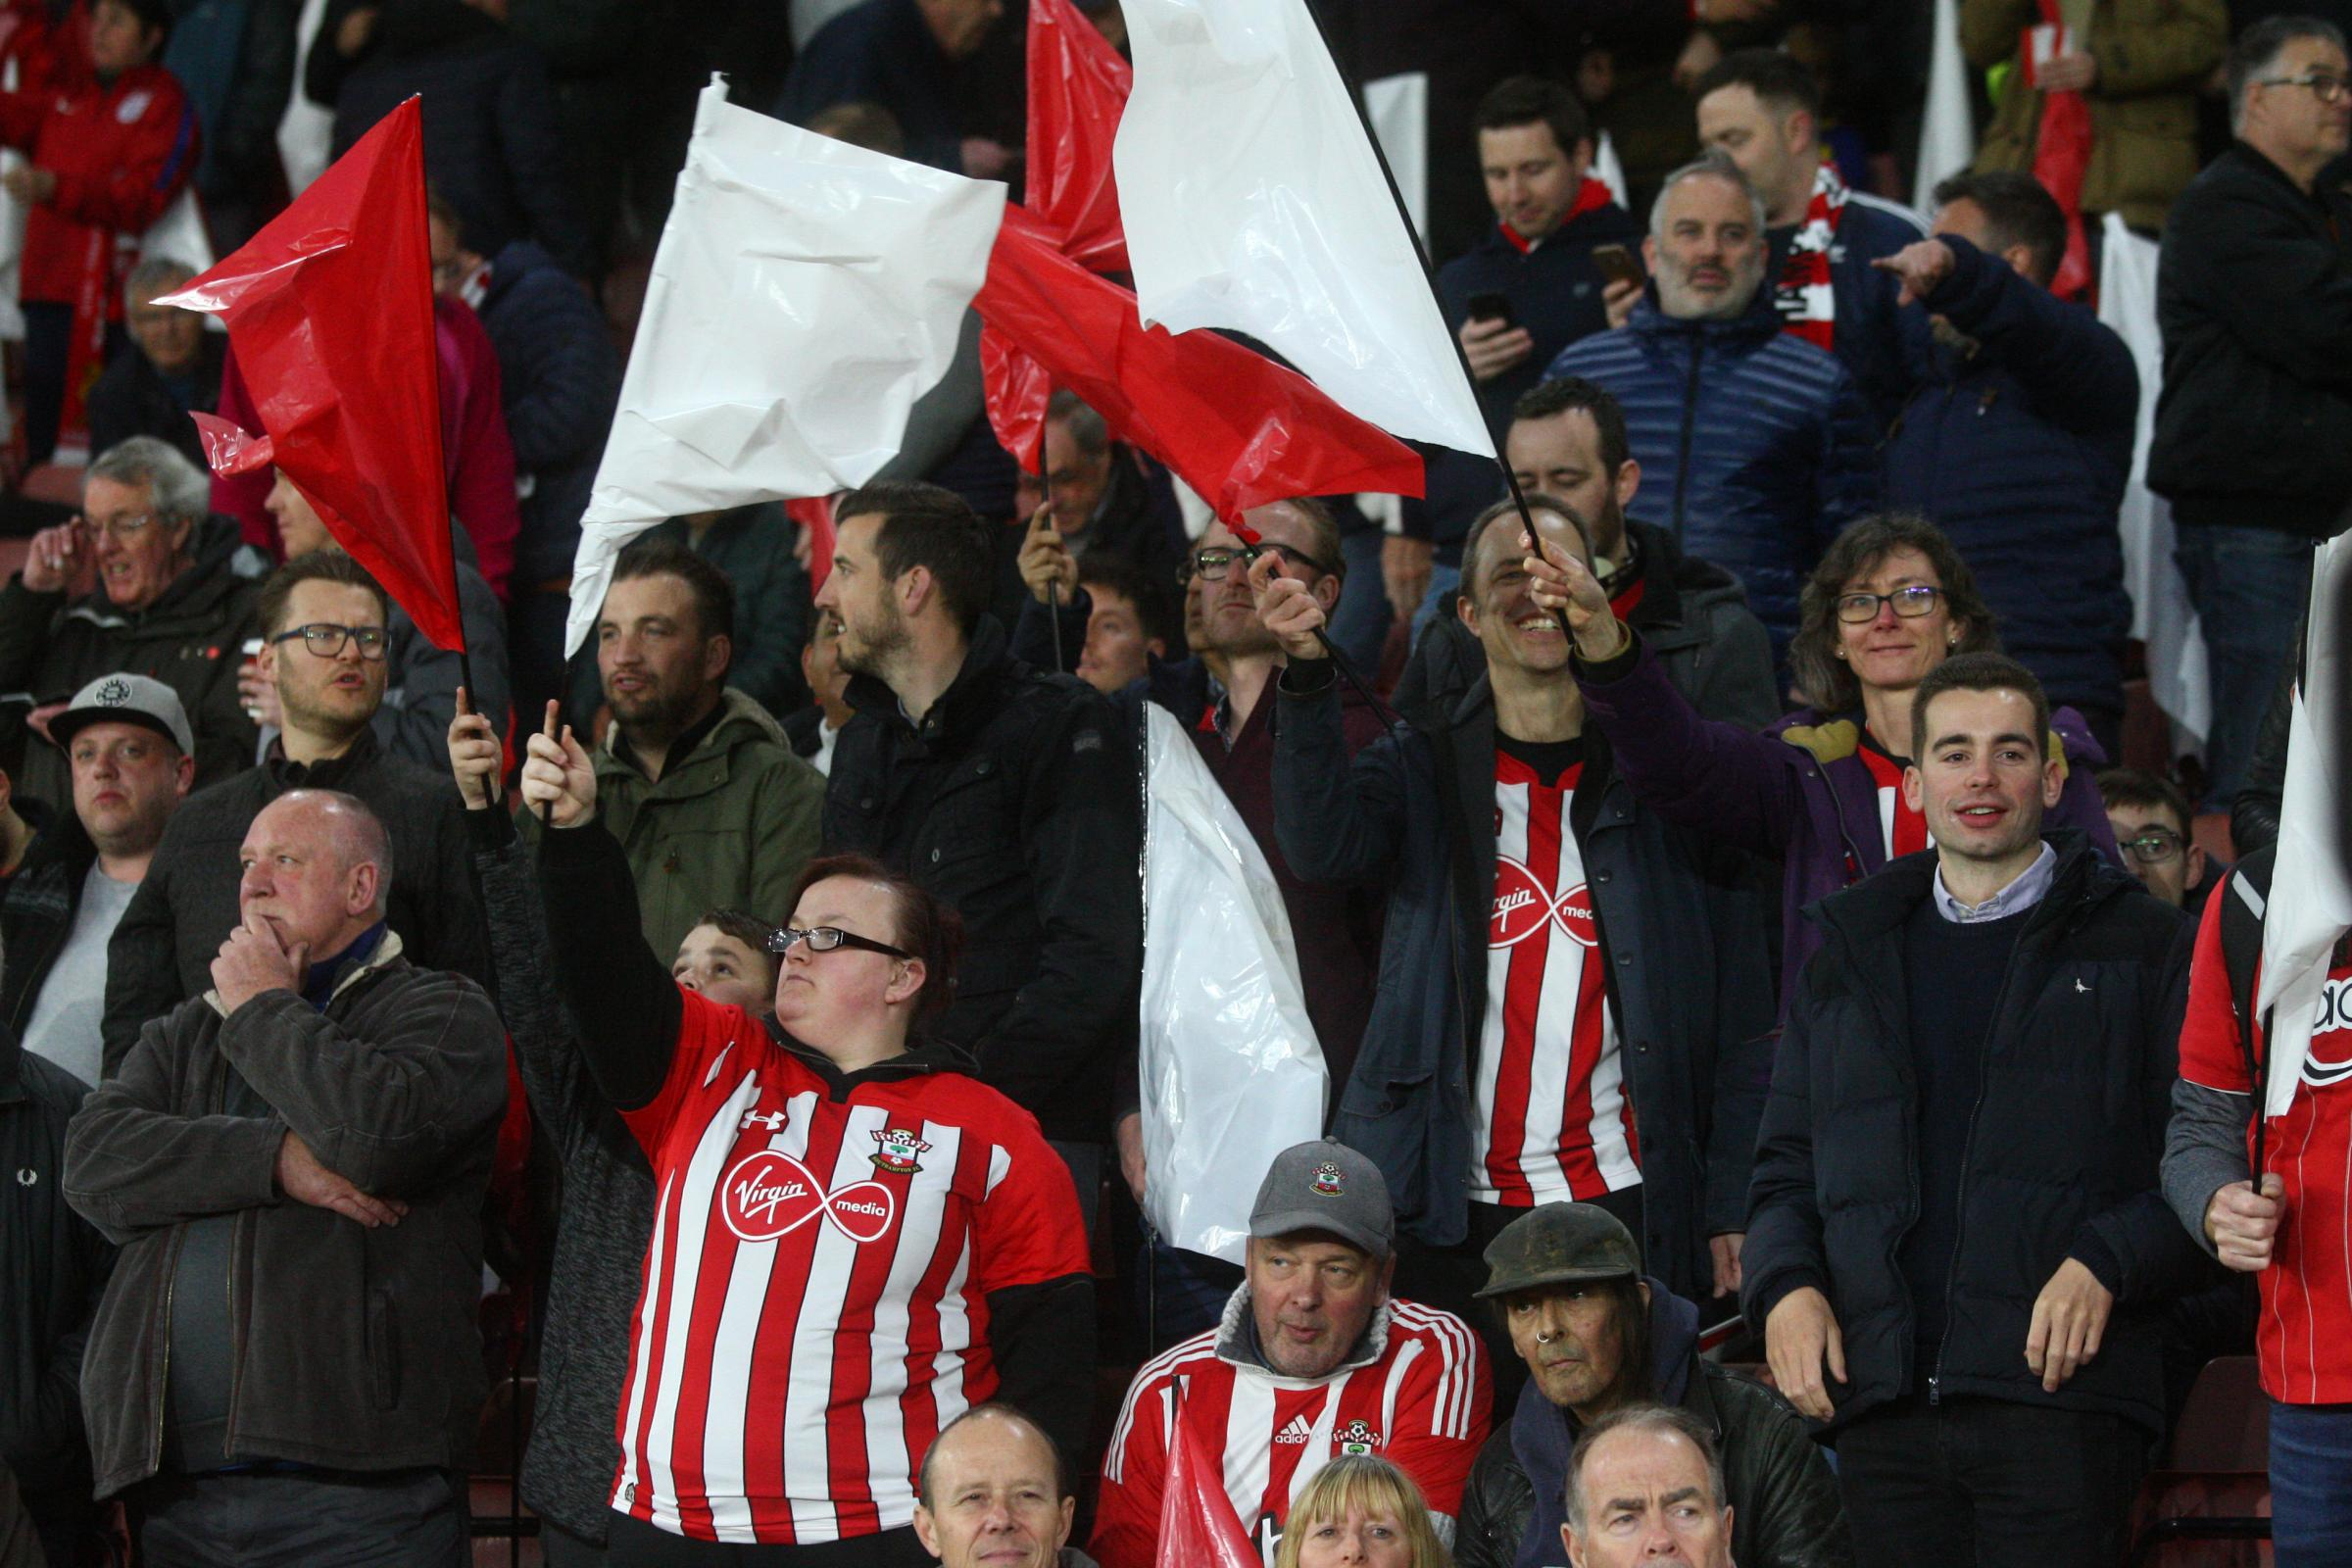 Saints fans helped create an excellent atmosphere at St Mary's on Friday night